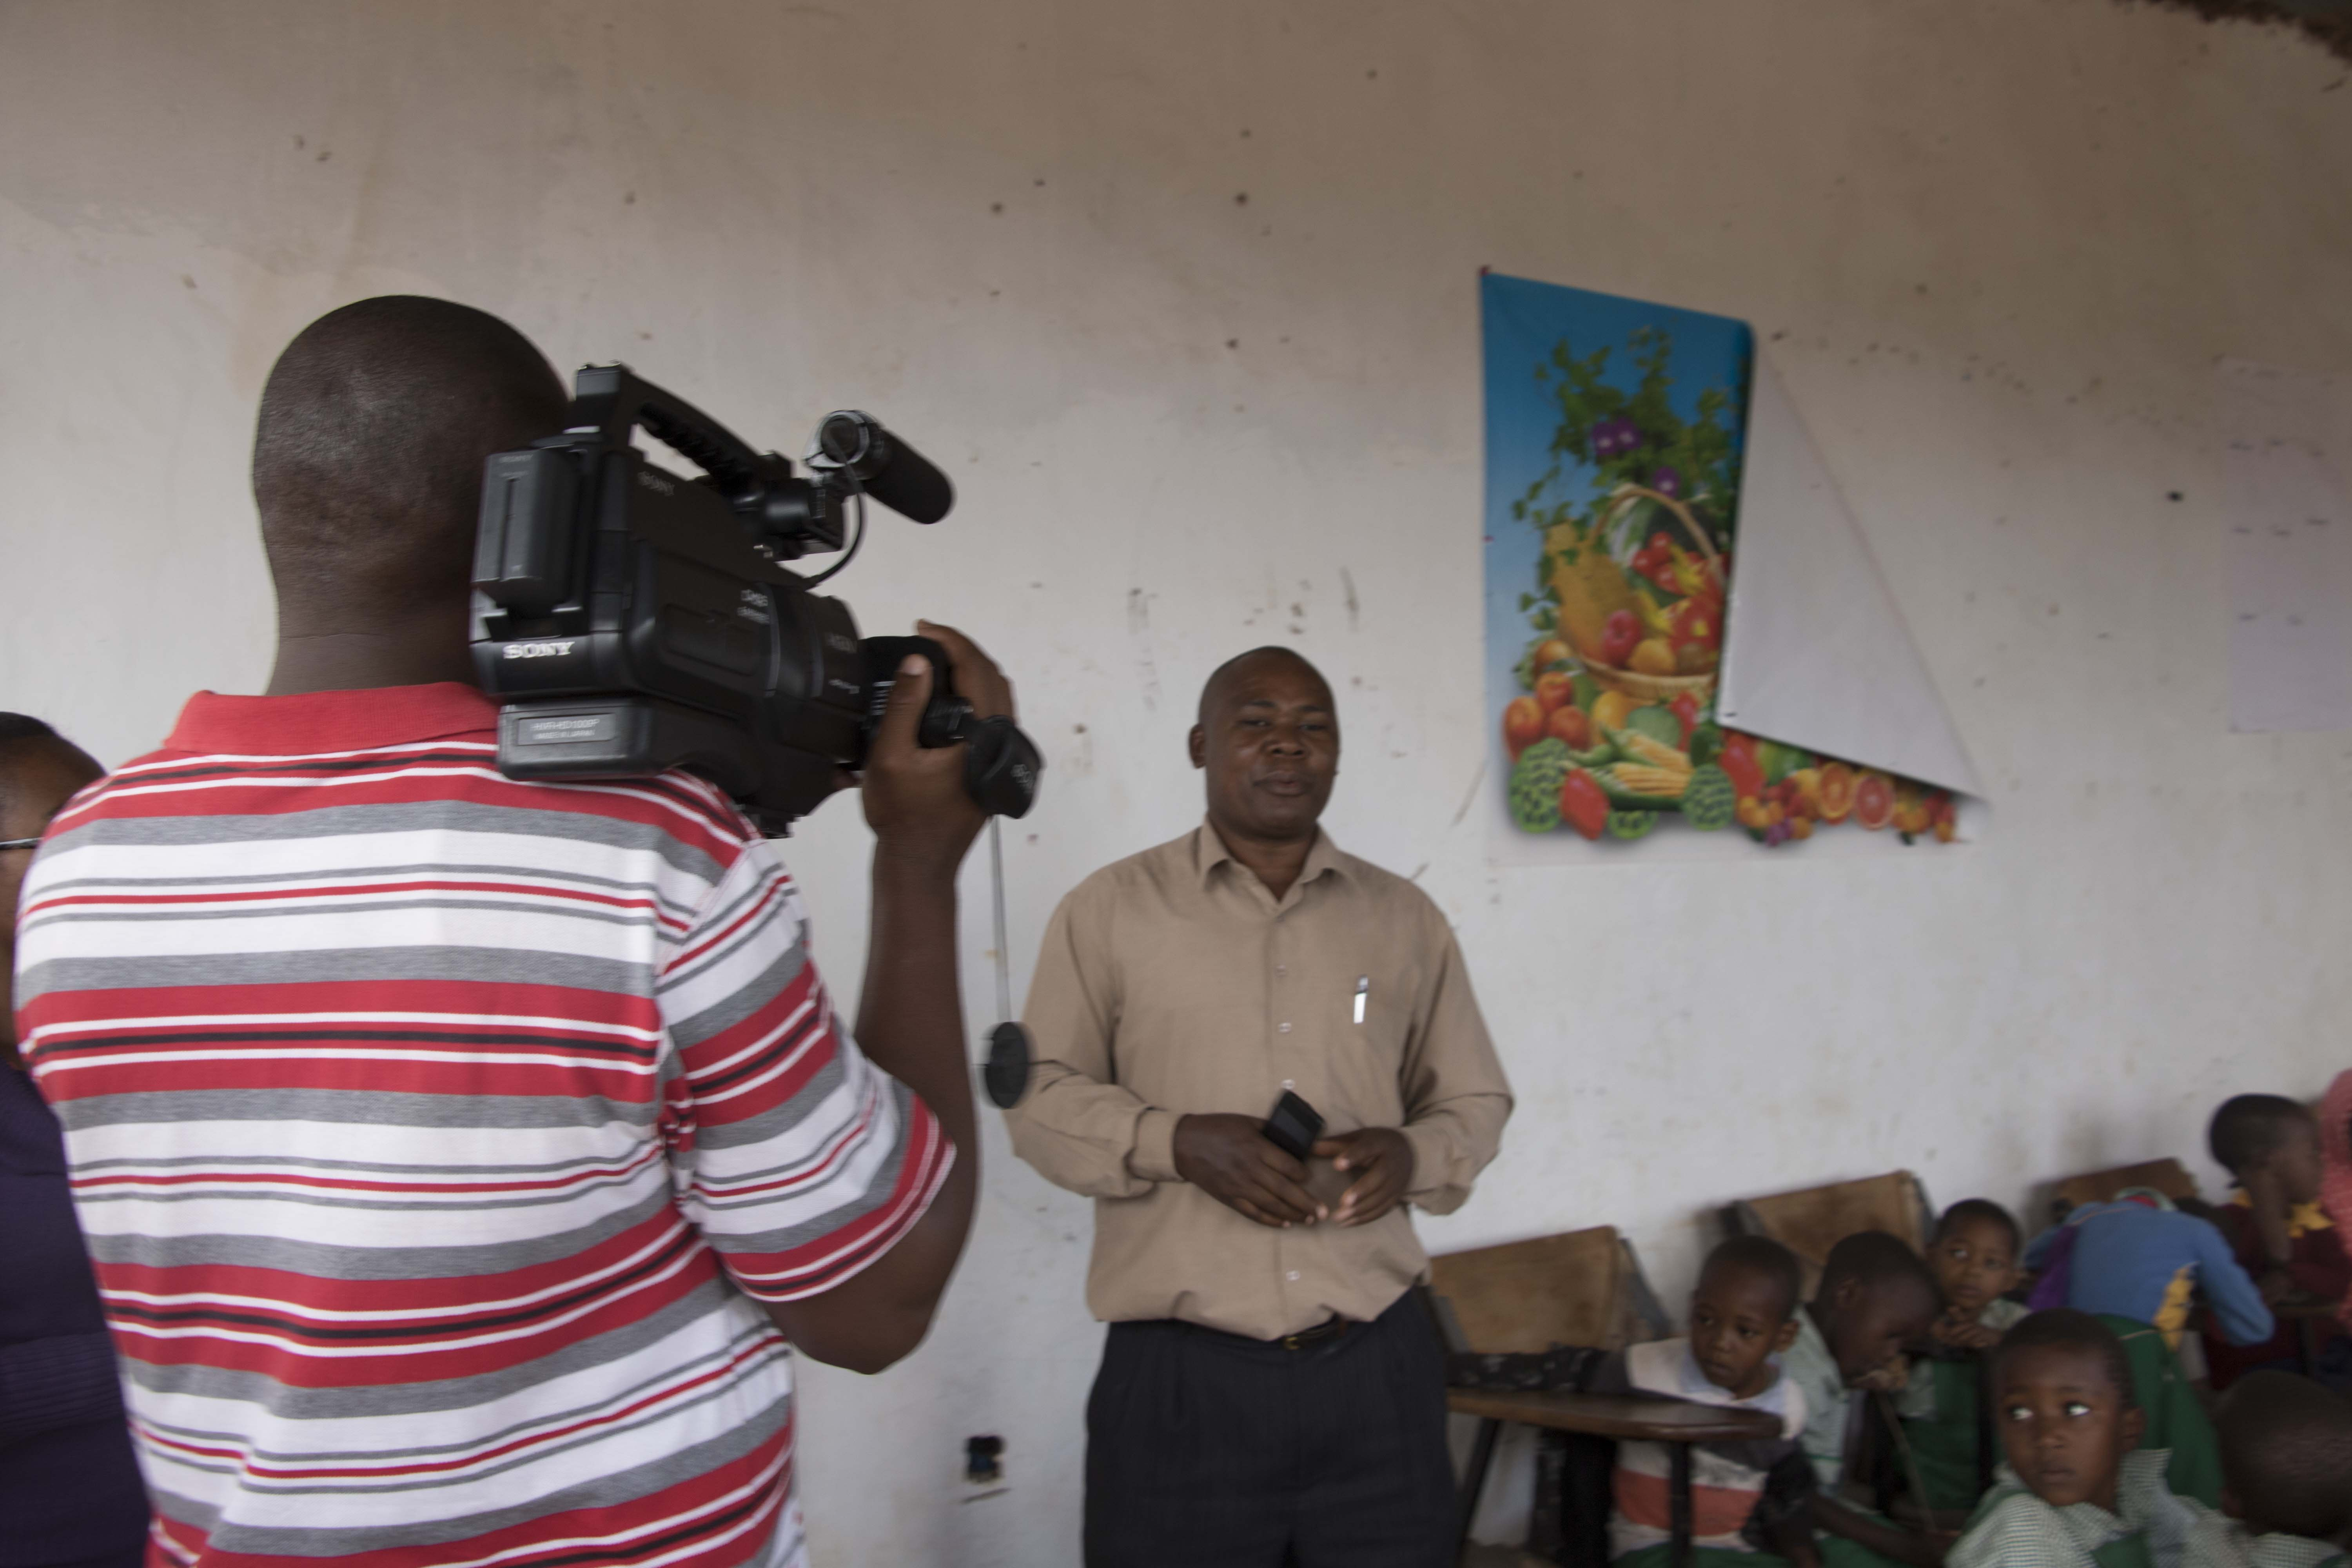 TV1 filming the classroom